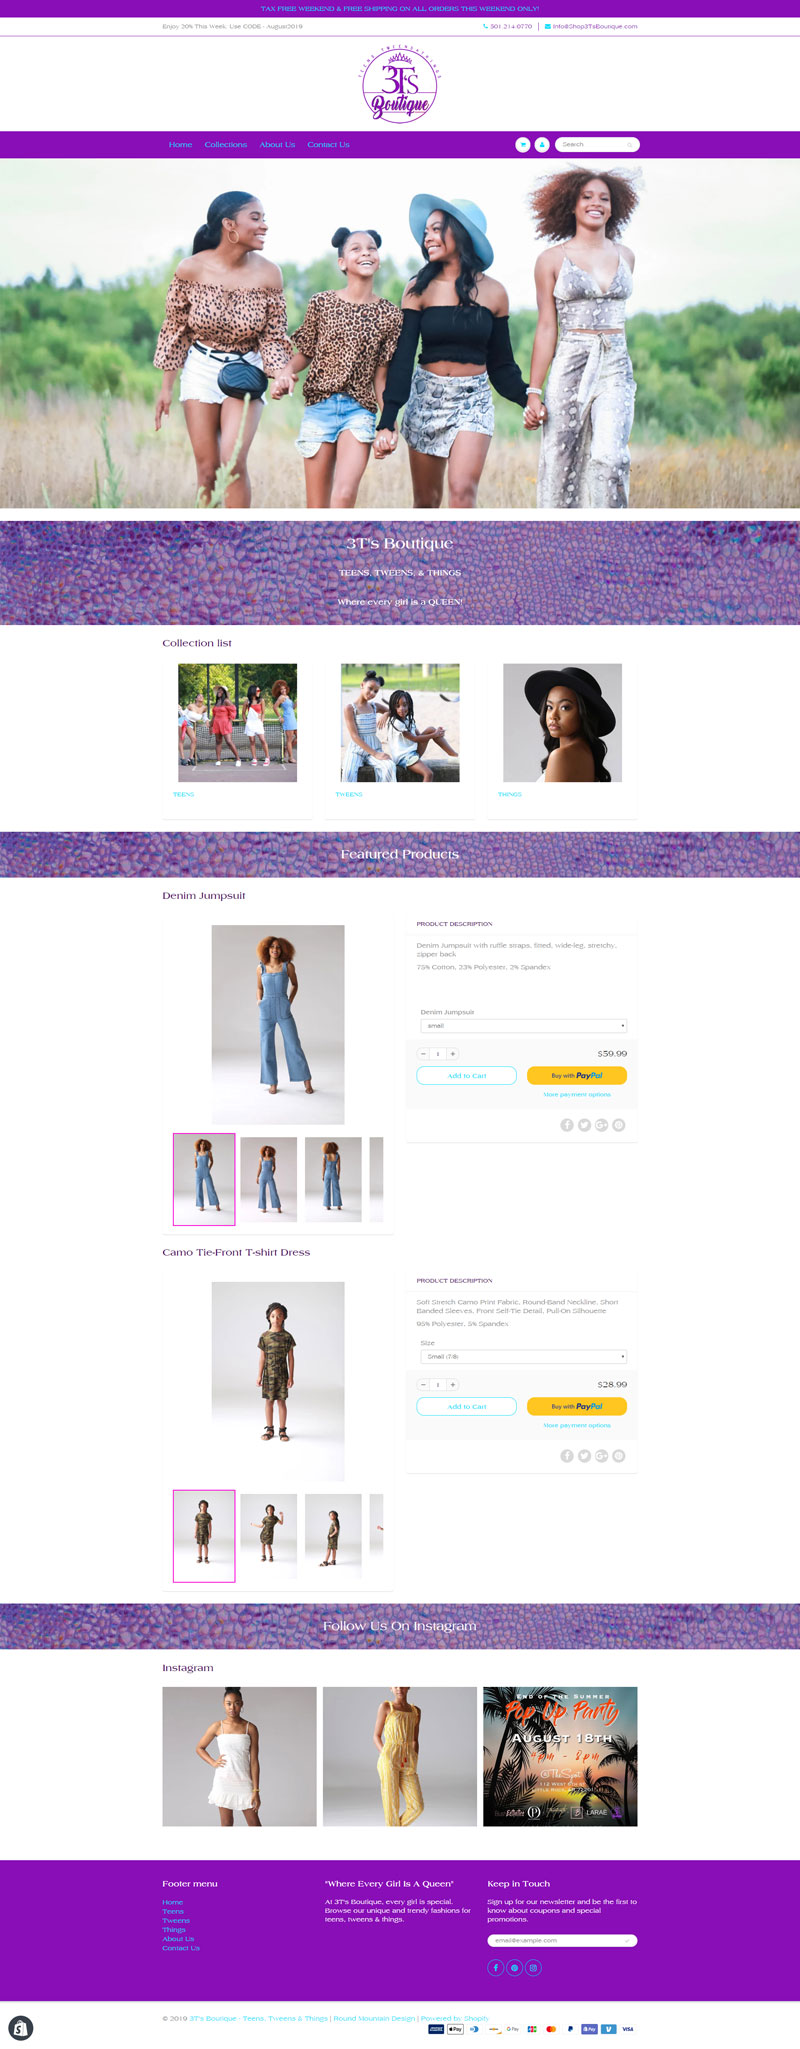 Shopify eCommerce Website Design